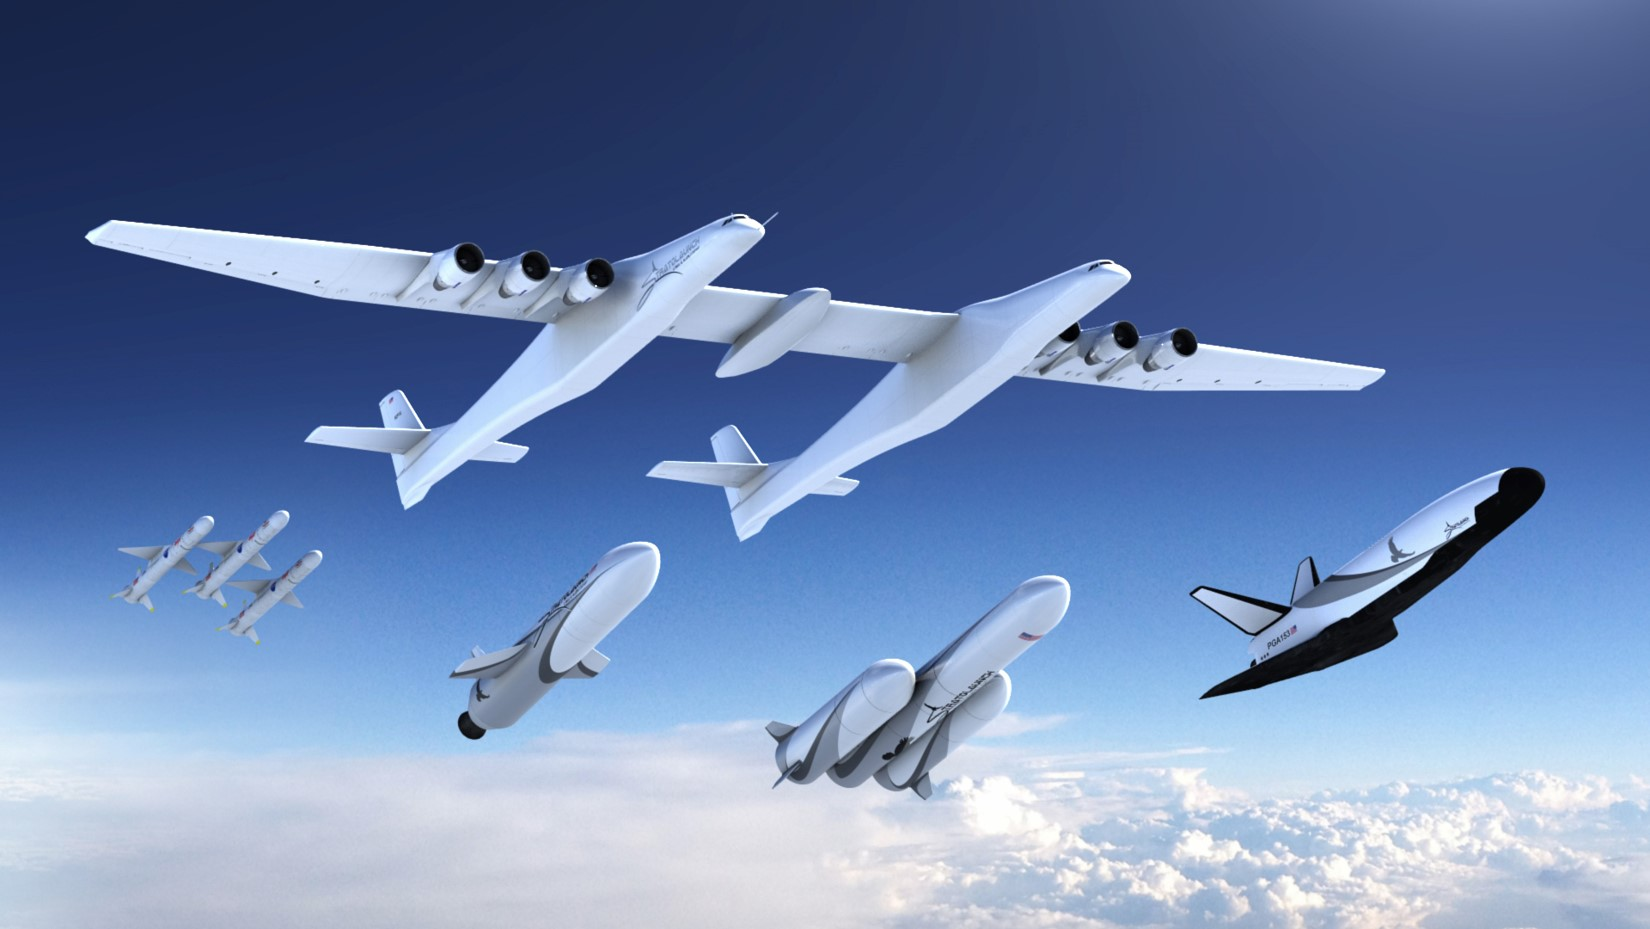 Stratolaunch rocket family (Stratolaunch)